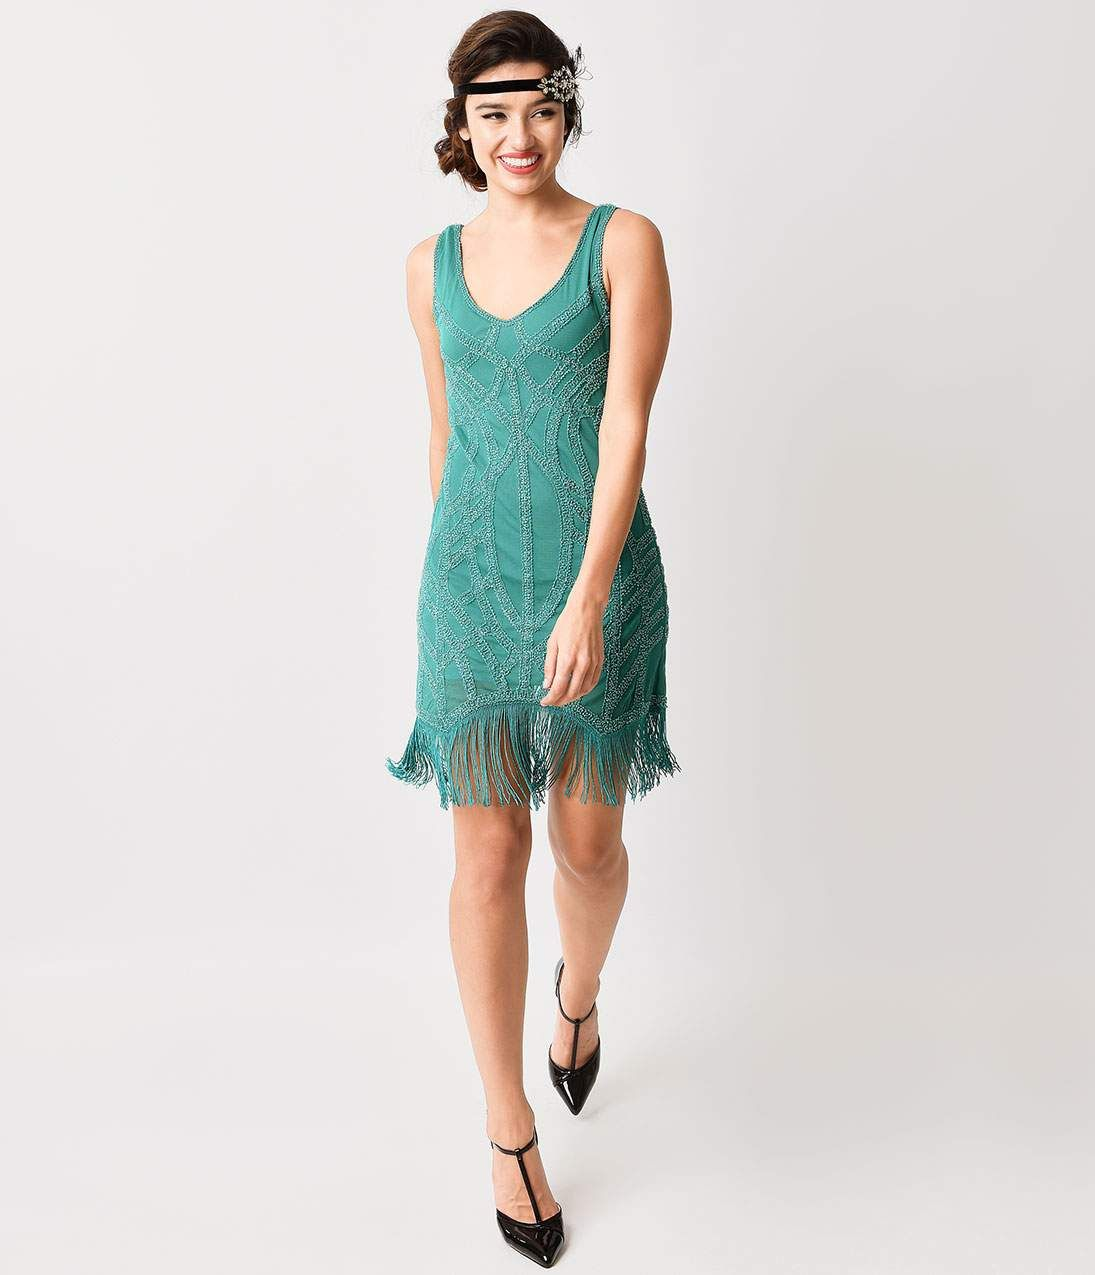 1920s Style Cocktail Party Dresses, Evening Gowns | Fringe flapper ...